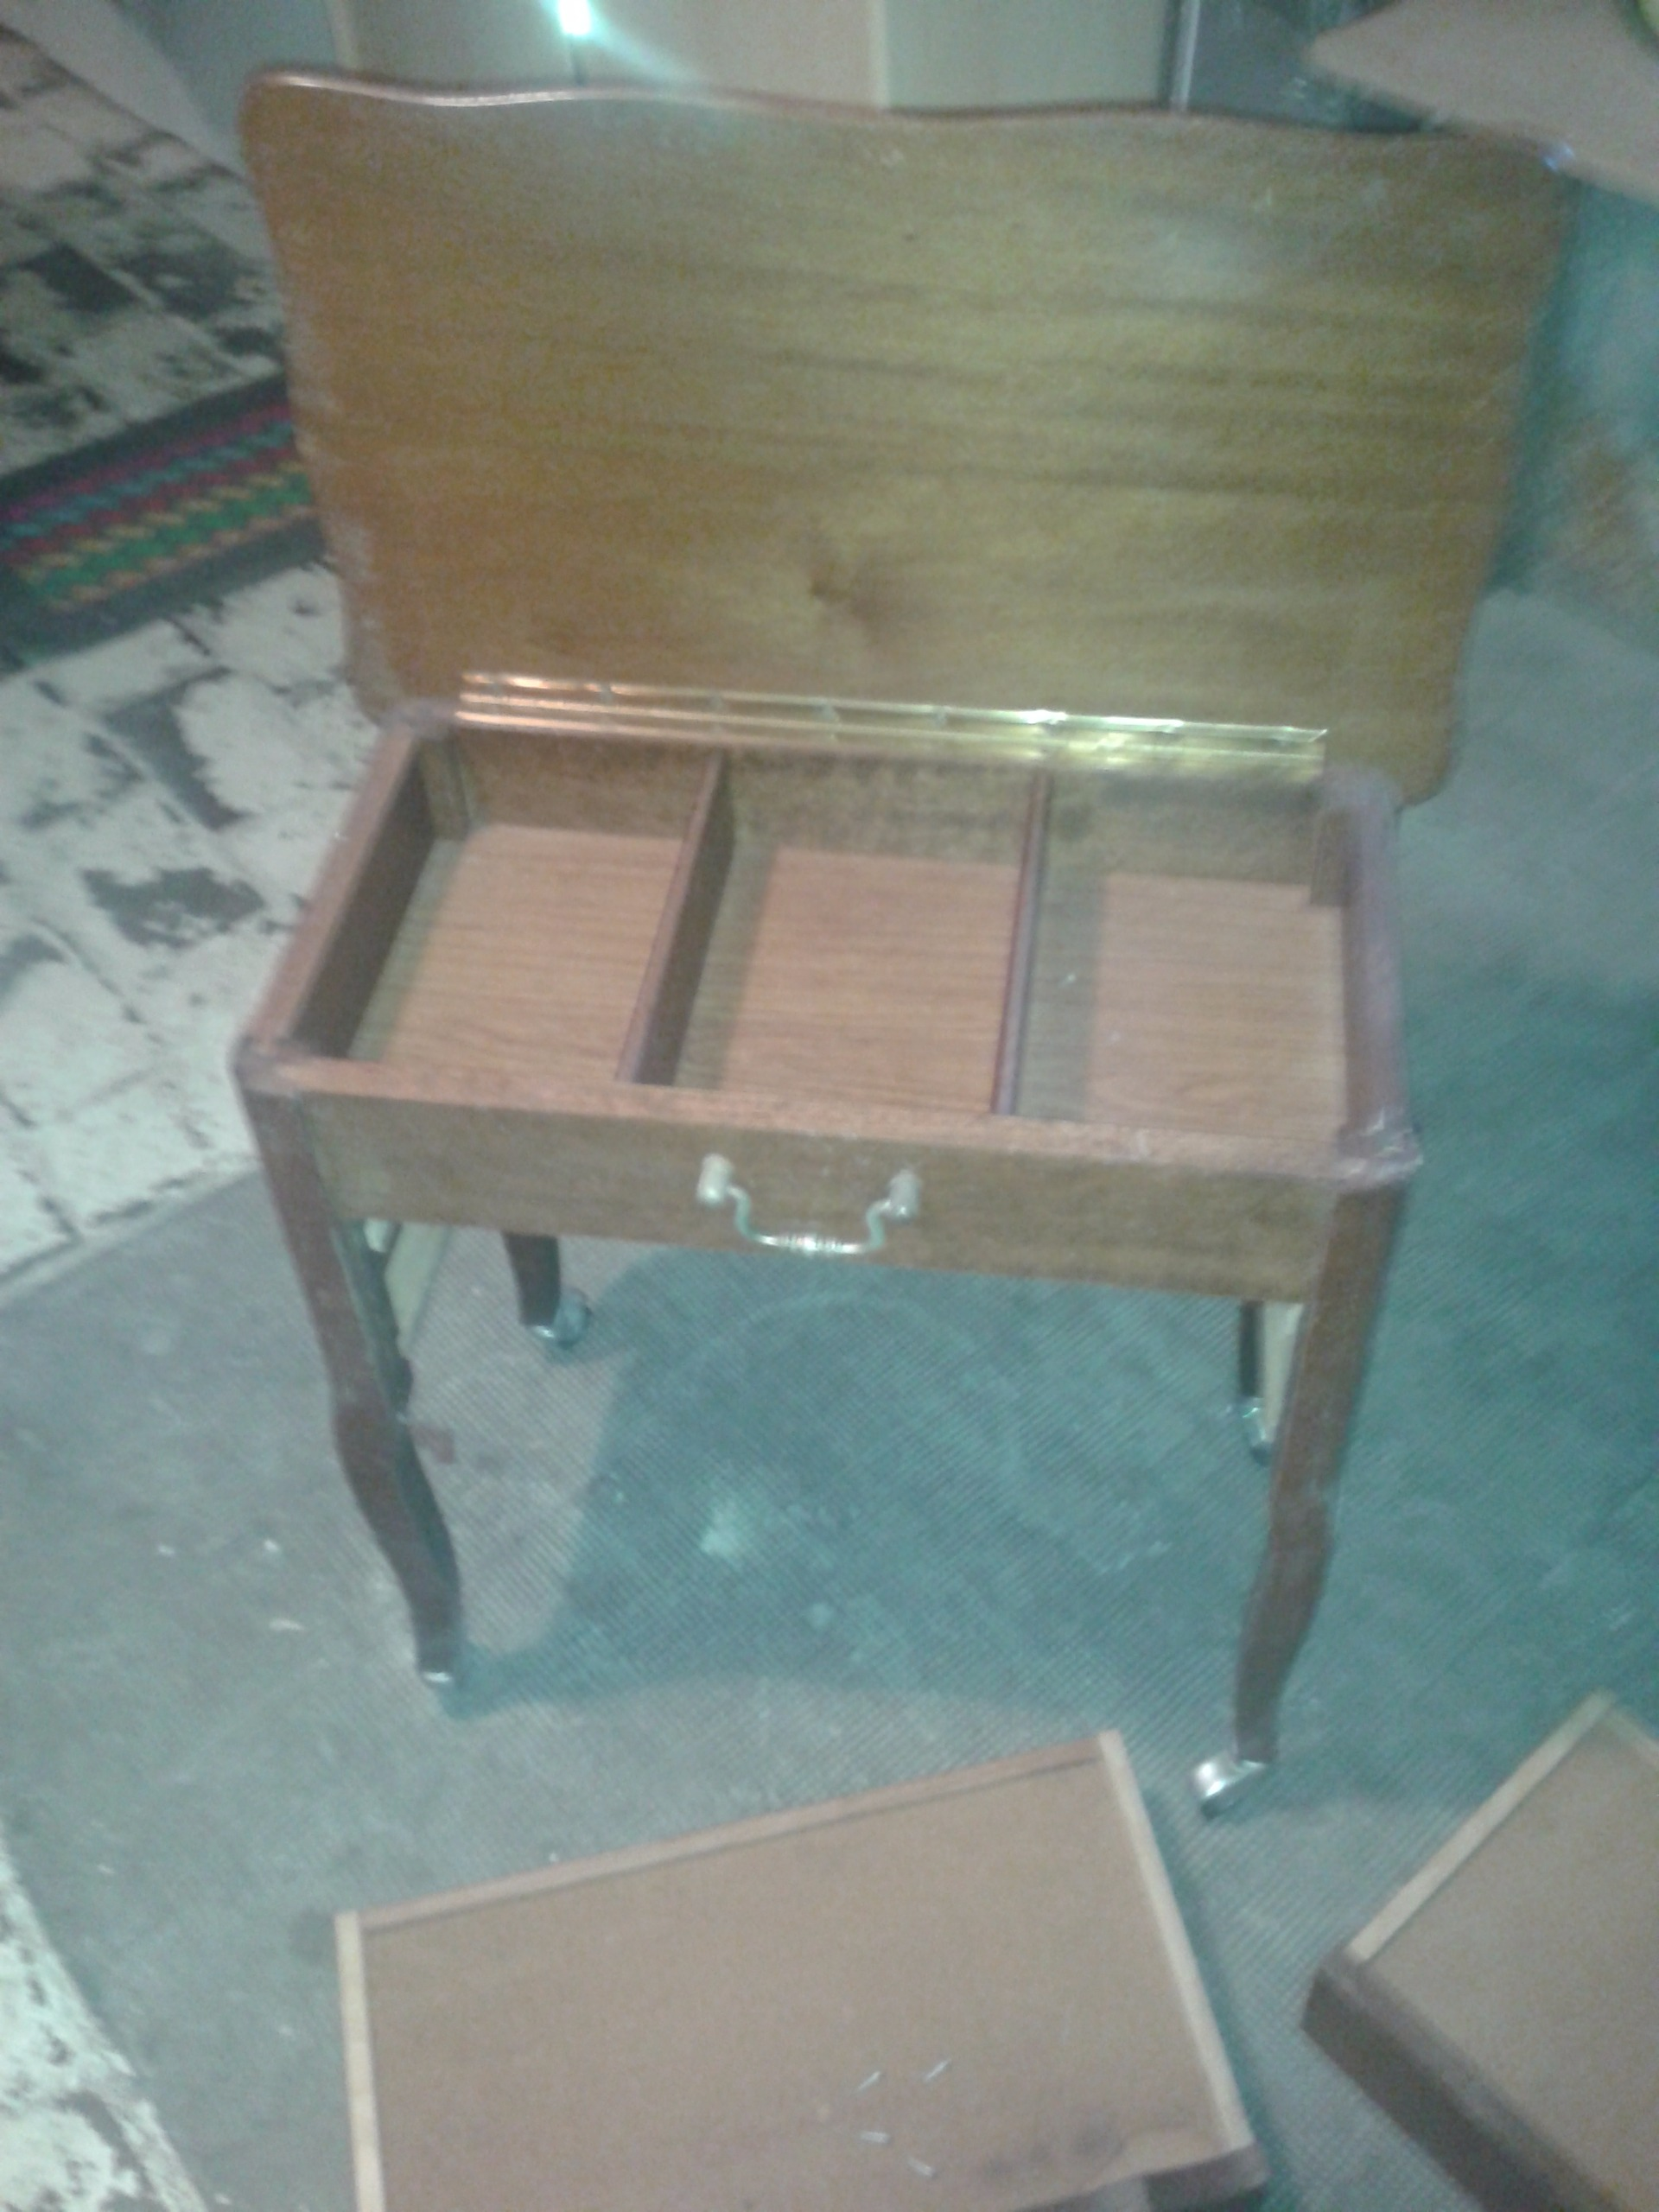 Picture of Unscrewing the Agglo/taking the Drawers Out